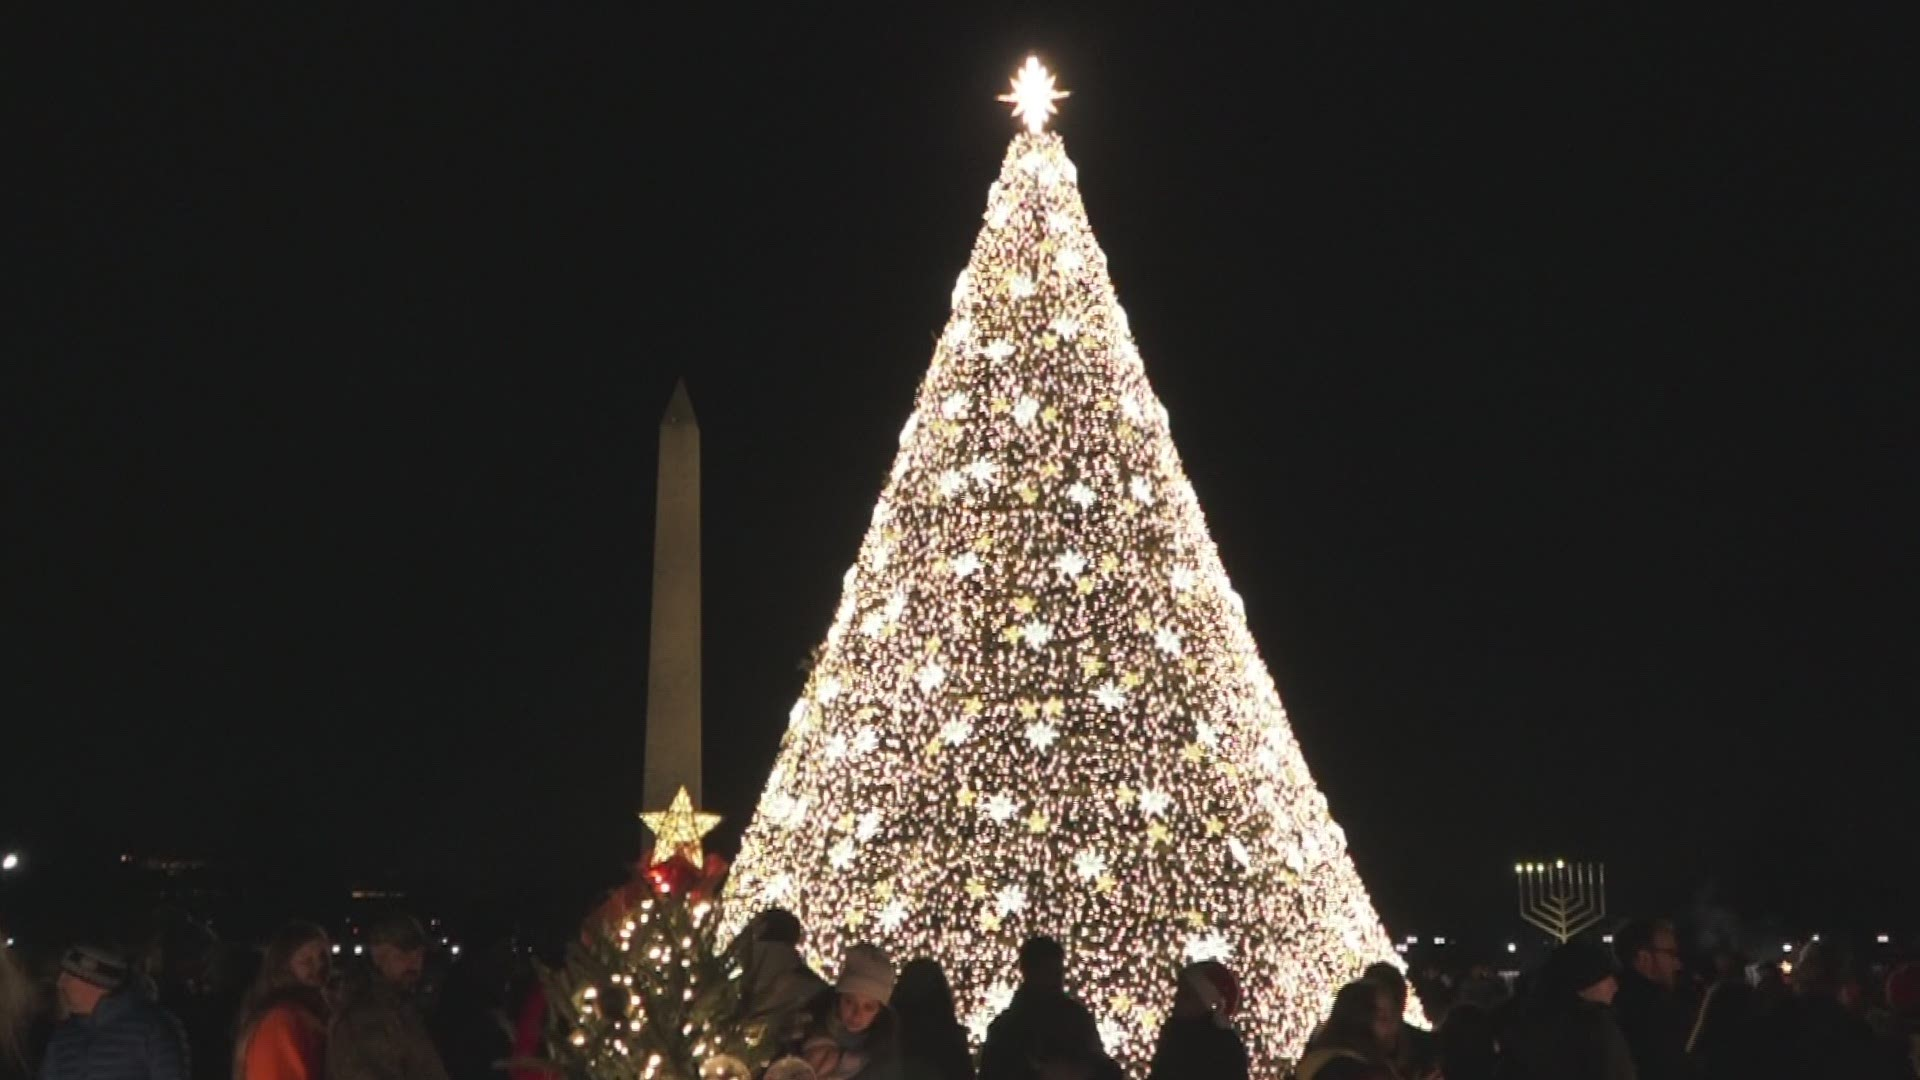 National Christmas Tree Lighting 2020 is virtual due to COVID 19